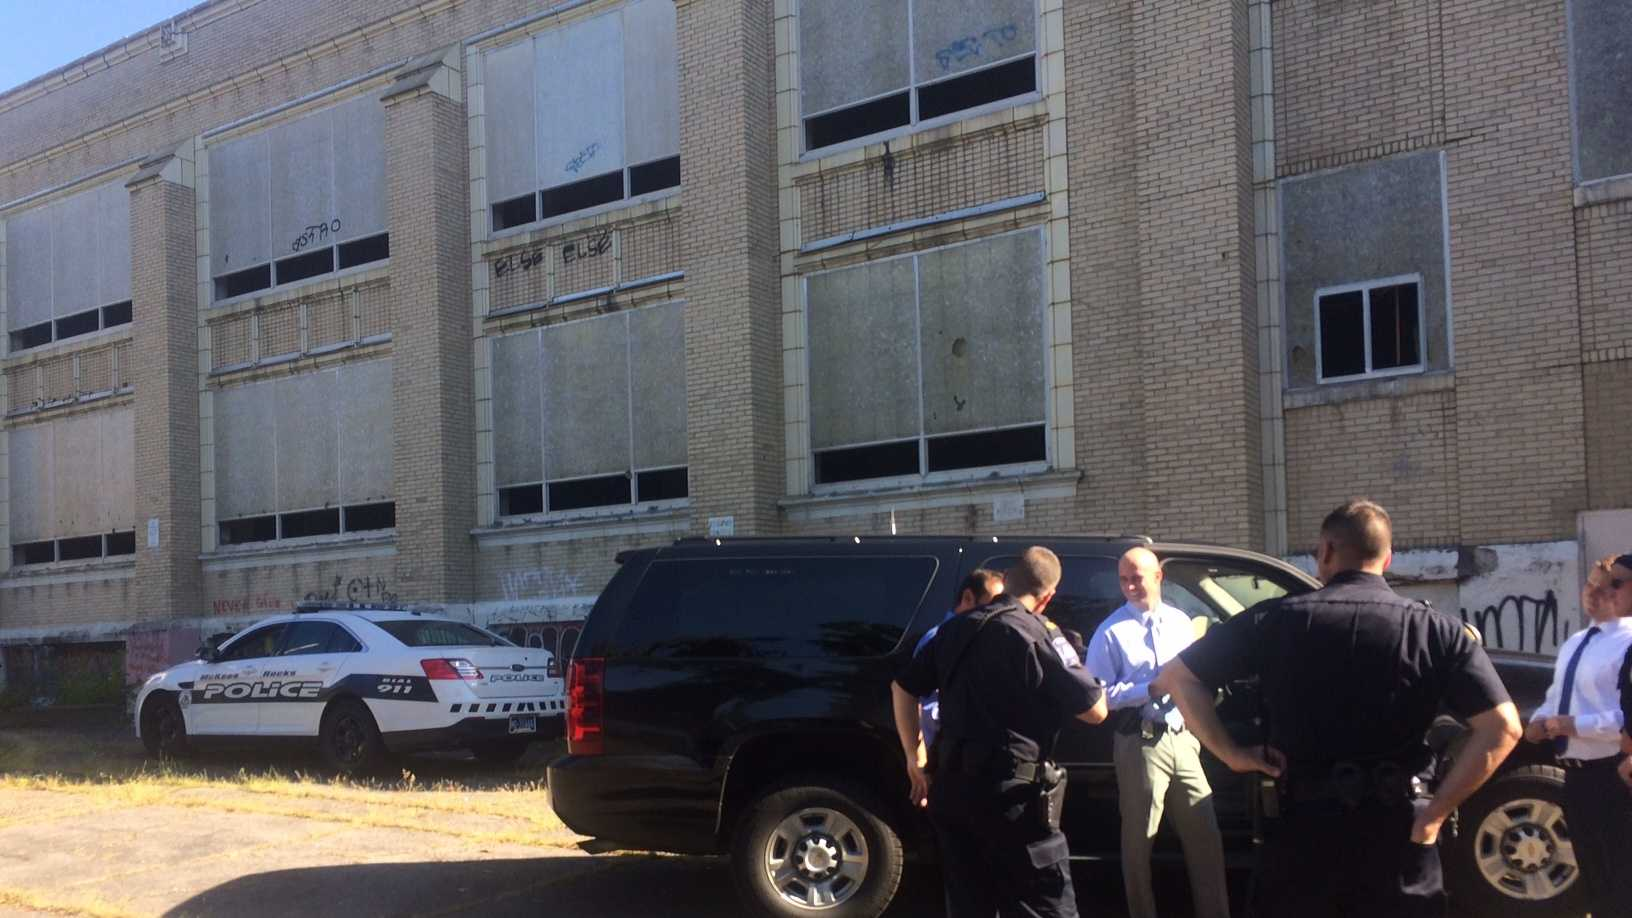 Body found in abandoned McKees rocks school